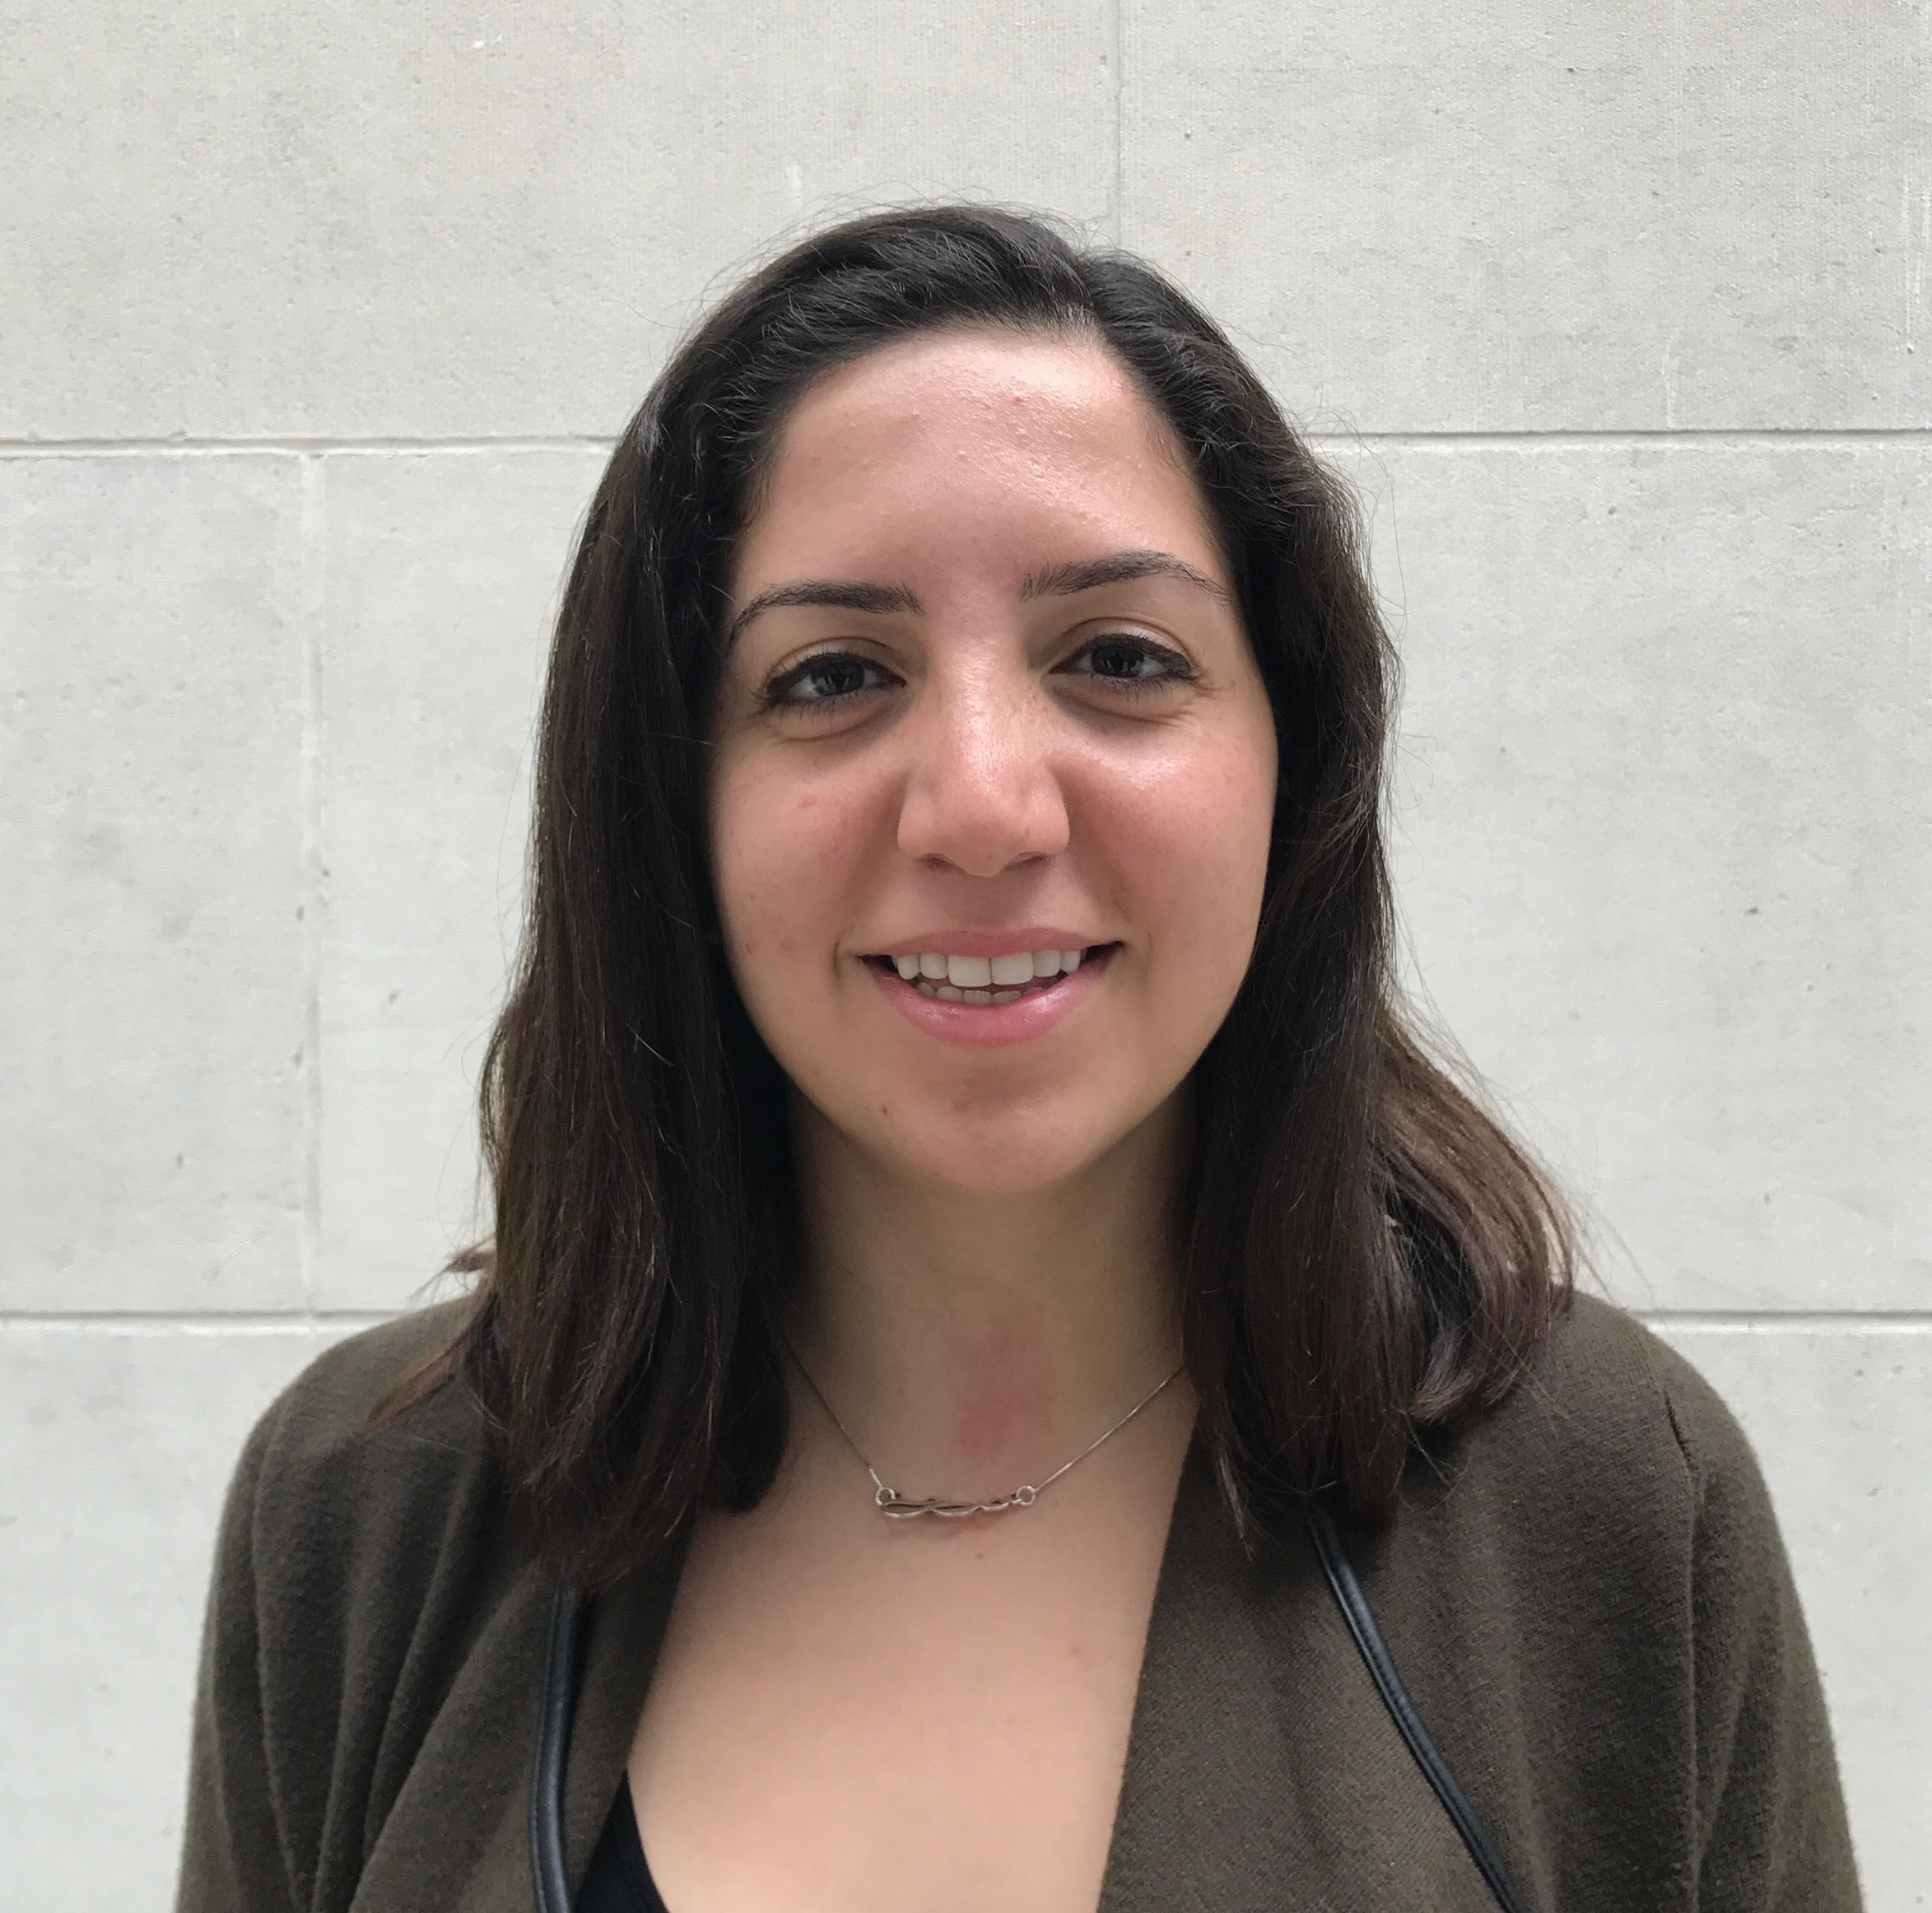 SOCIALS OFFICER - FARAH AL-AMAD - I am a finalist LLB Law student at SOAS and the Law Society Socials Officer. My responsibilities include planning social events for members of the Law Society and anyone interested in attending, mainly the Law Ball. I find these events important as they bring people together and make university life much friendlier and memorable. I hope to make the best out my degree and being in London, both academically and socially, and to encourage members of the society to do the same!